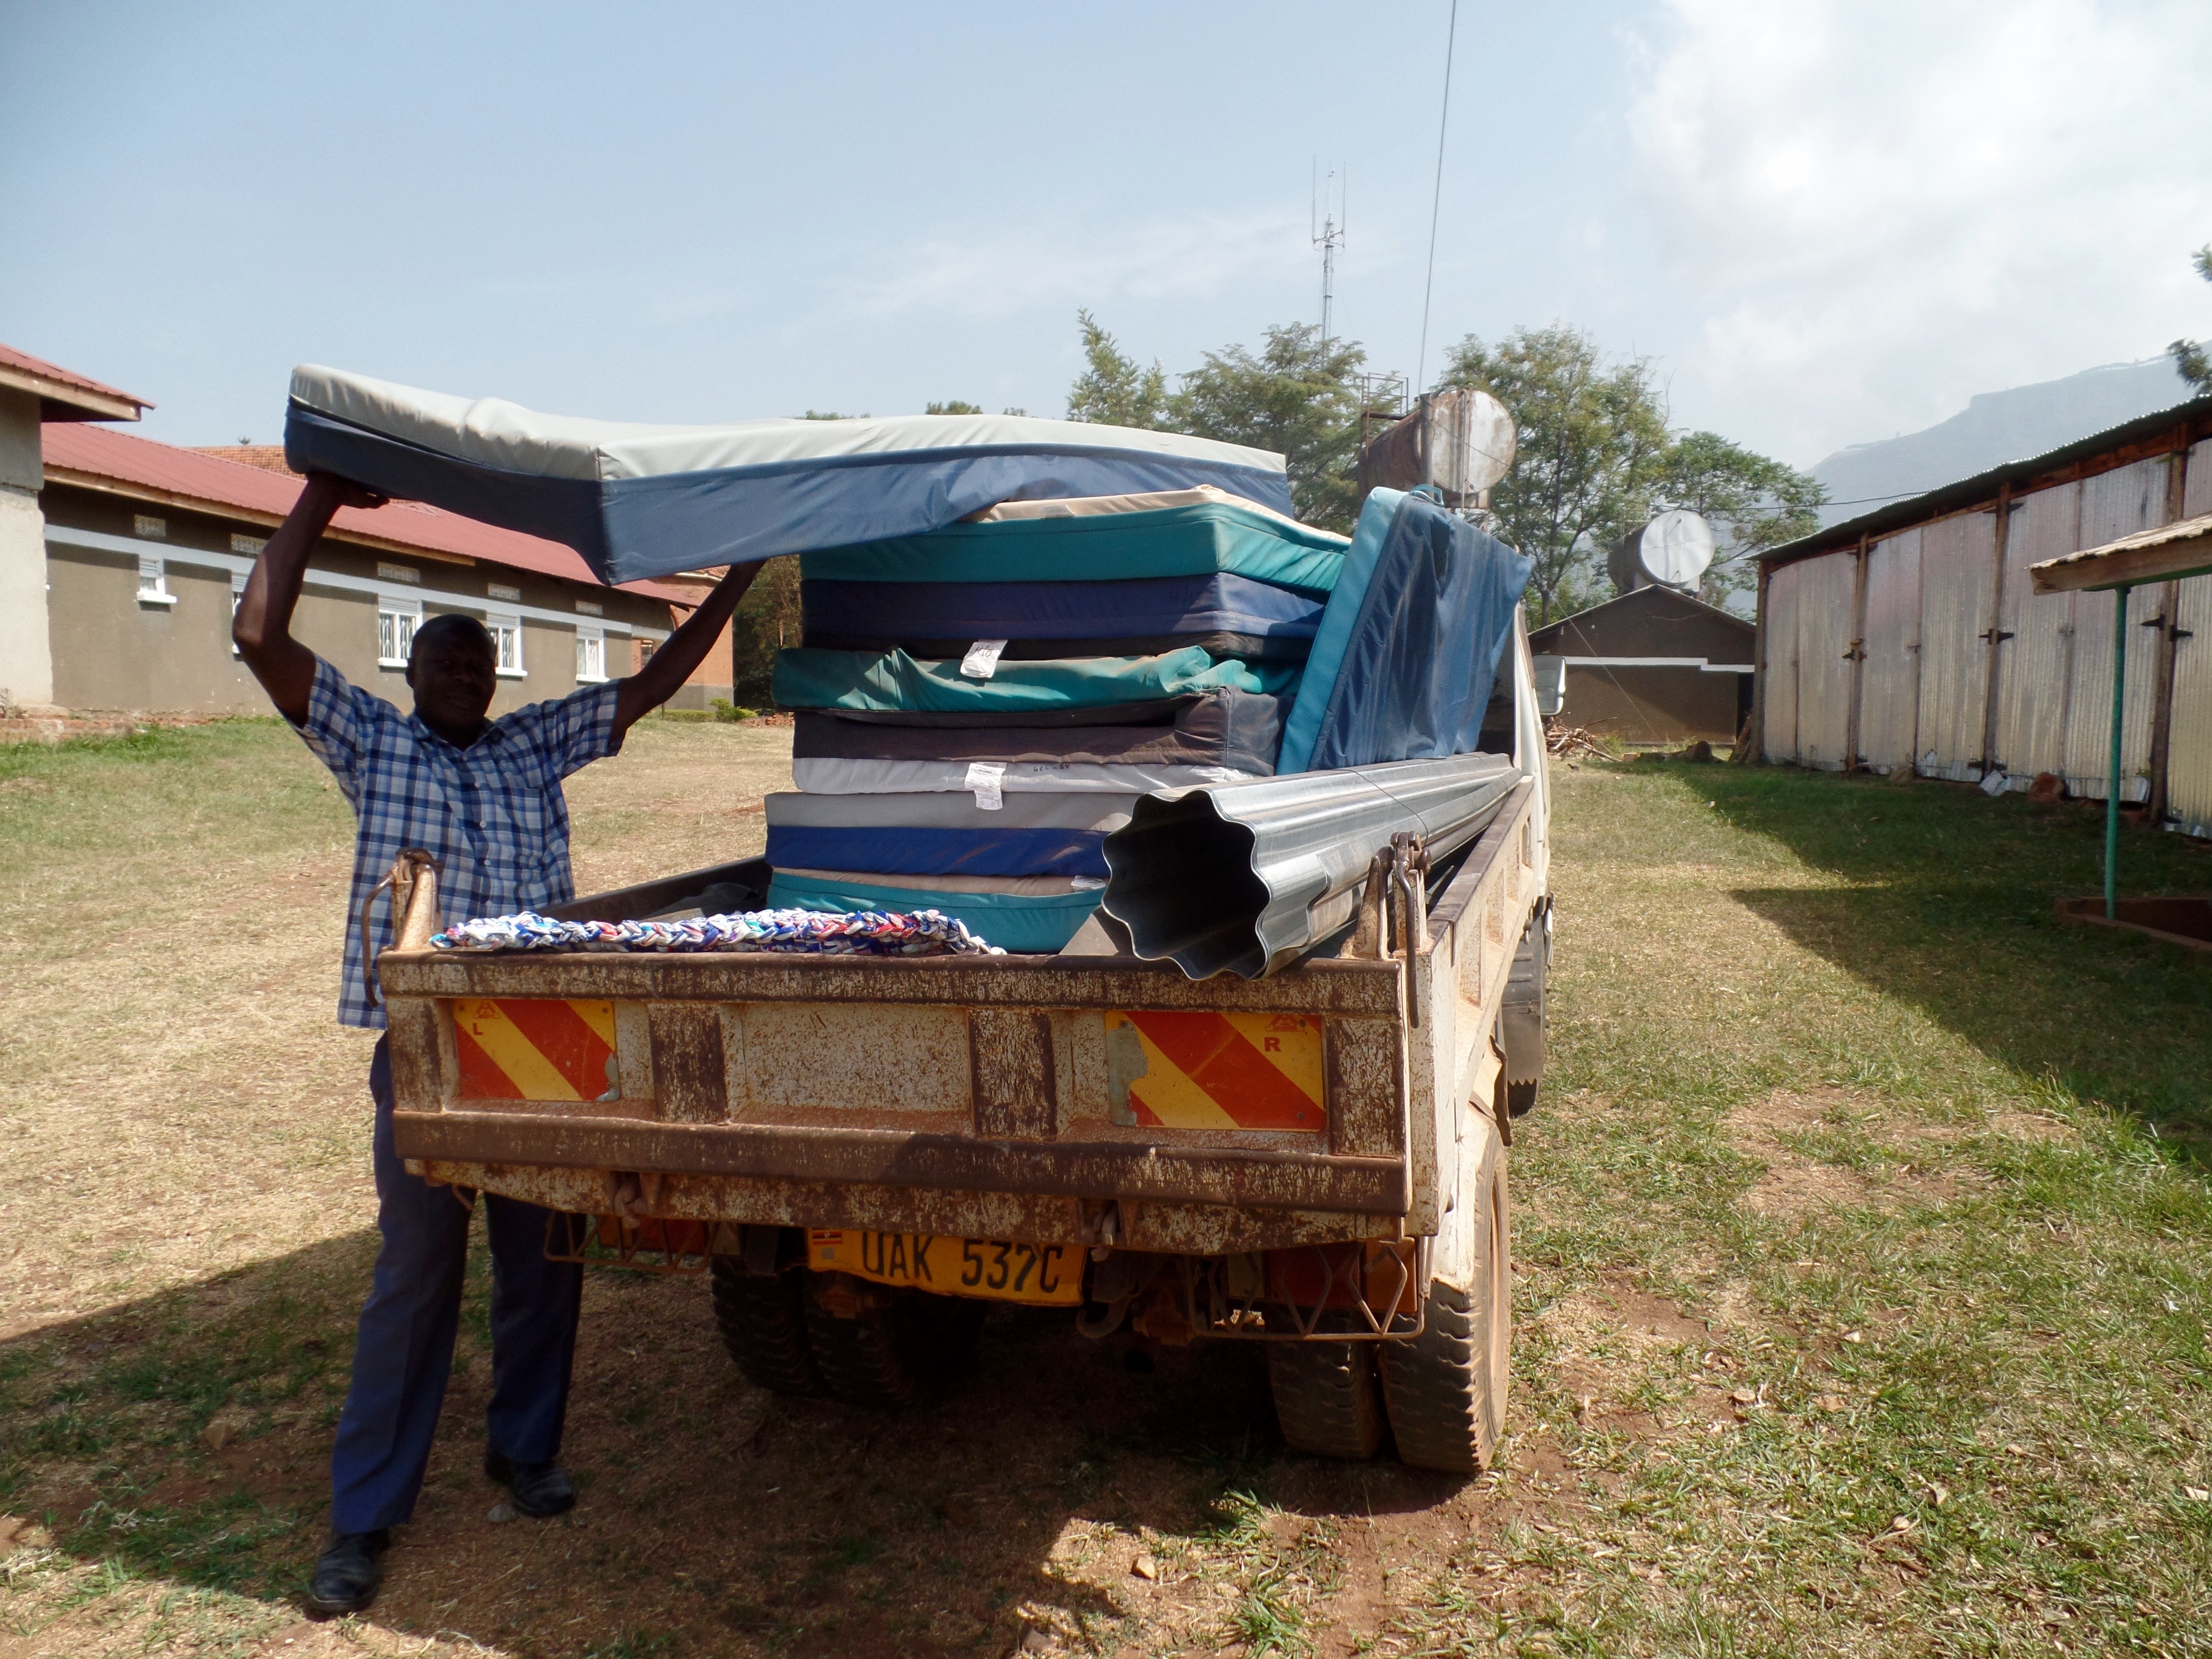 Mattresses for distribution